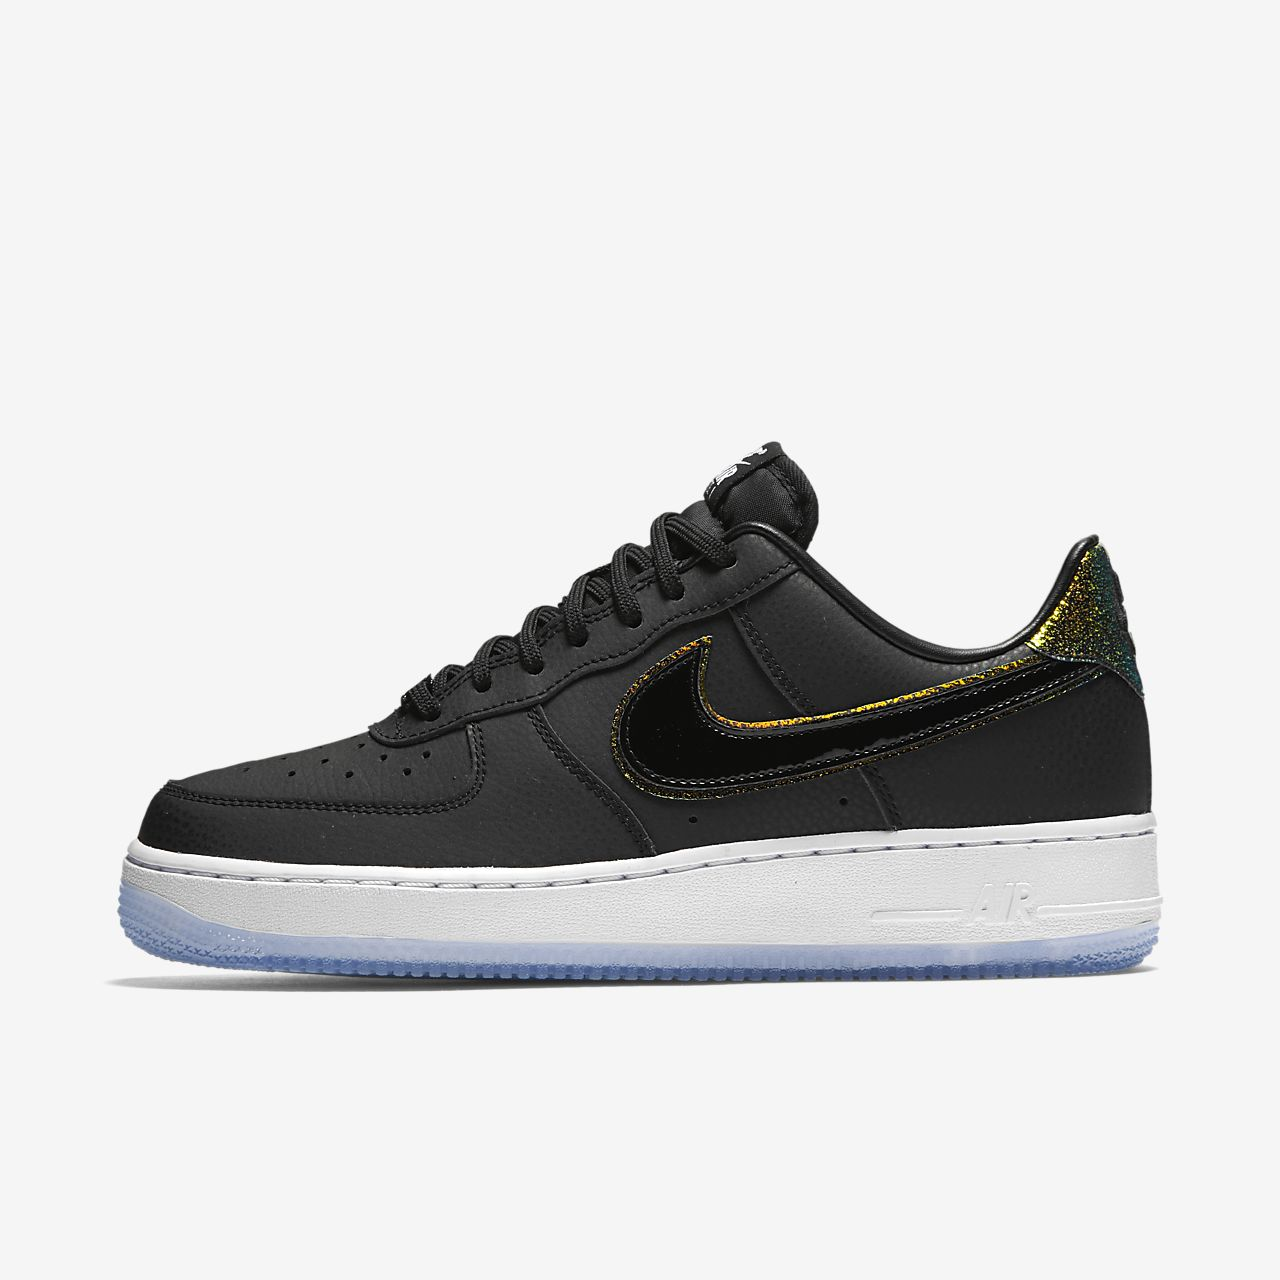 Nike Air Force 1 '07 PRM 女子运动鞋